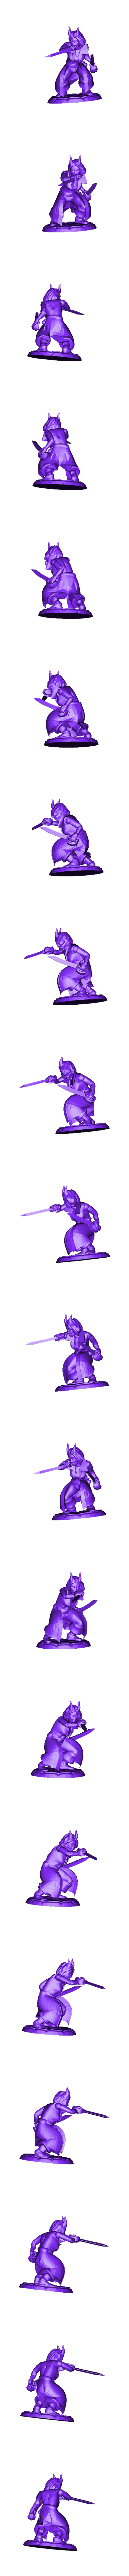 tiefling_swashbuckler_crouching.stl Download free STL file Fantasy Mini Collection (multiple poses) • 3D printable object, stockto